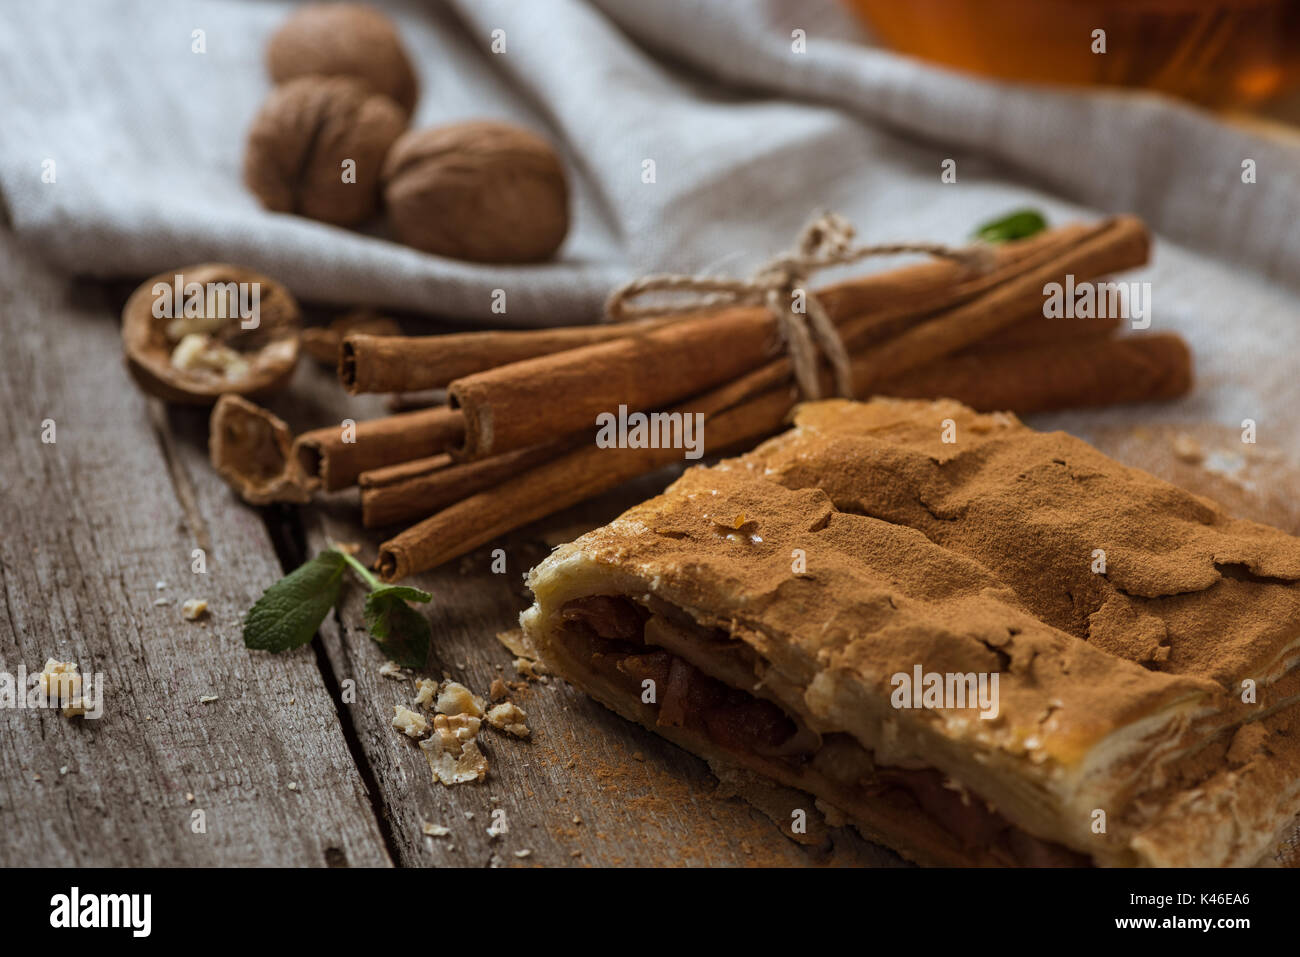 homemade apple pie with cinnamon sticks and walnuts on rustic wooden tabletop - Stock Image